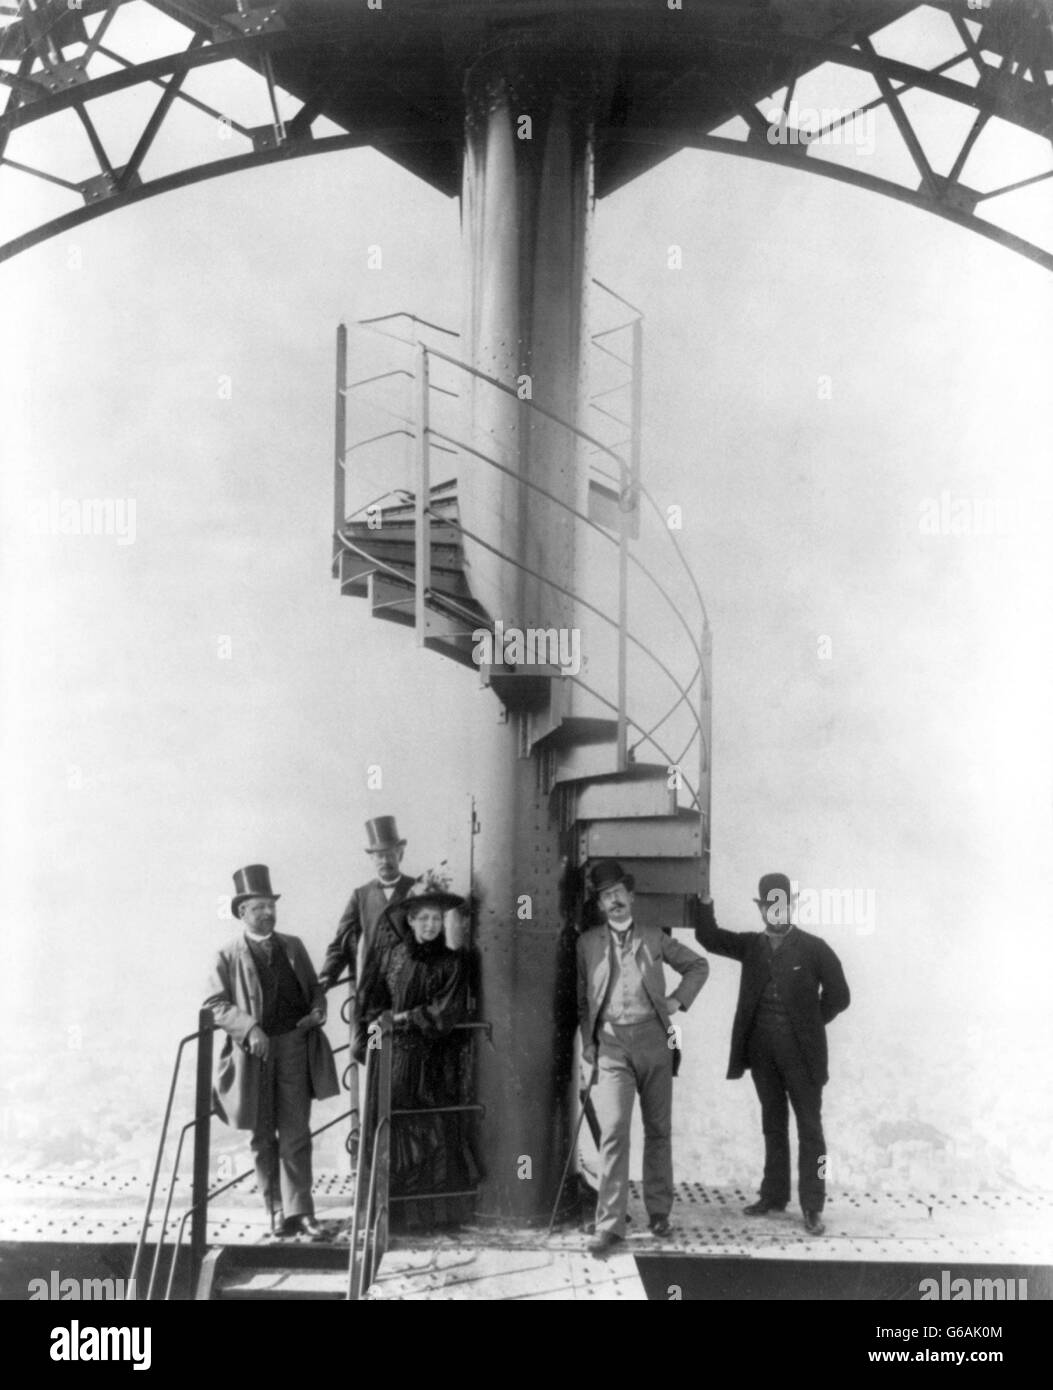 Gustave Eiffel and four other people at the summit of the Eiffel Tower at the time of the Paris Exposition Universelle - Stock Image